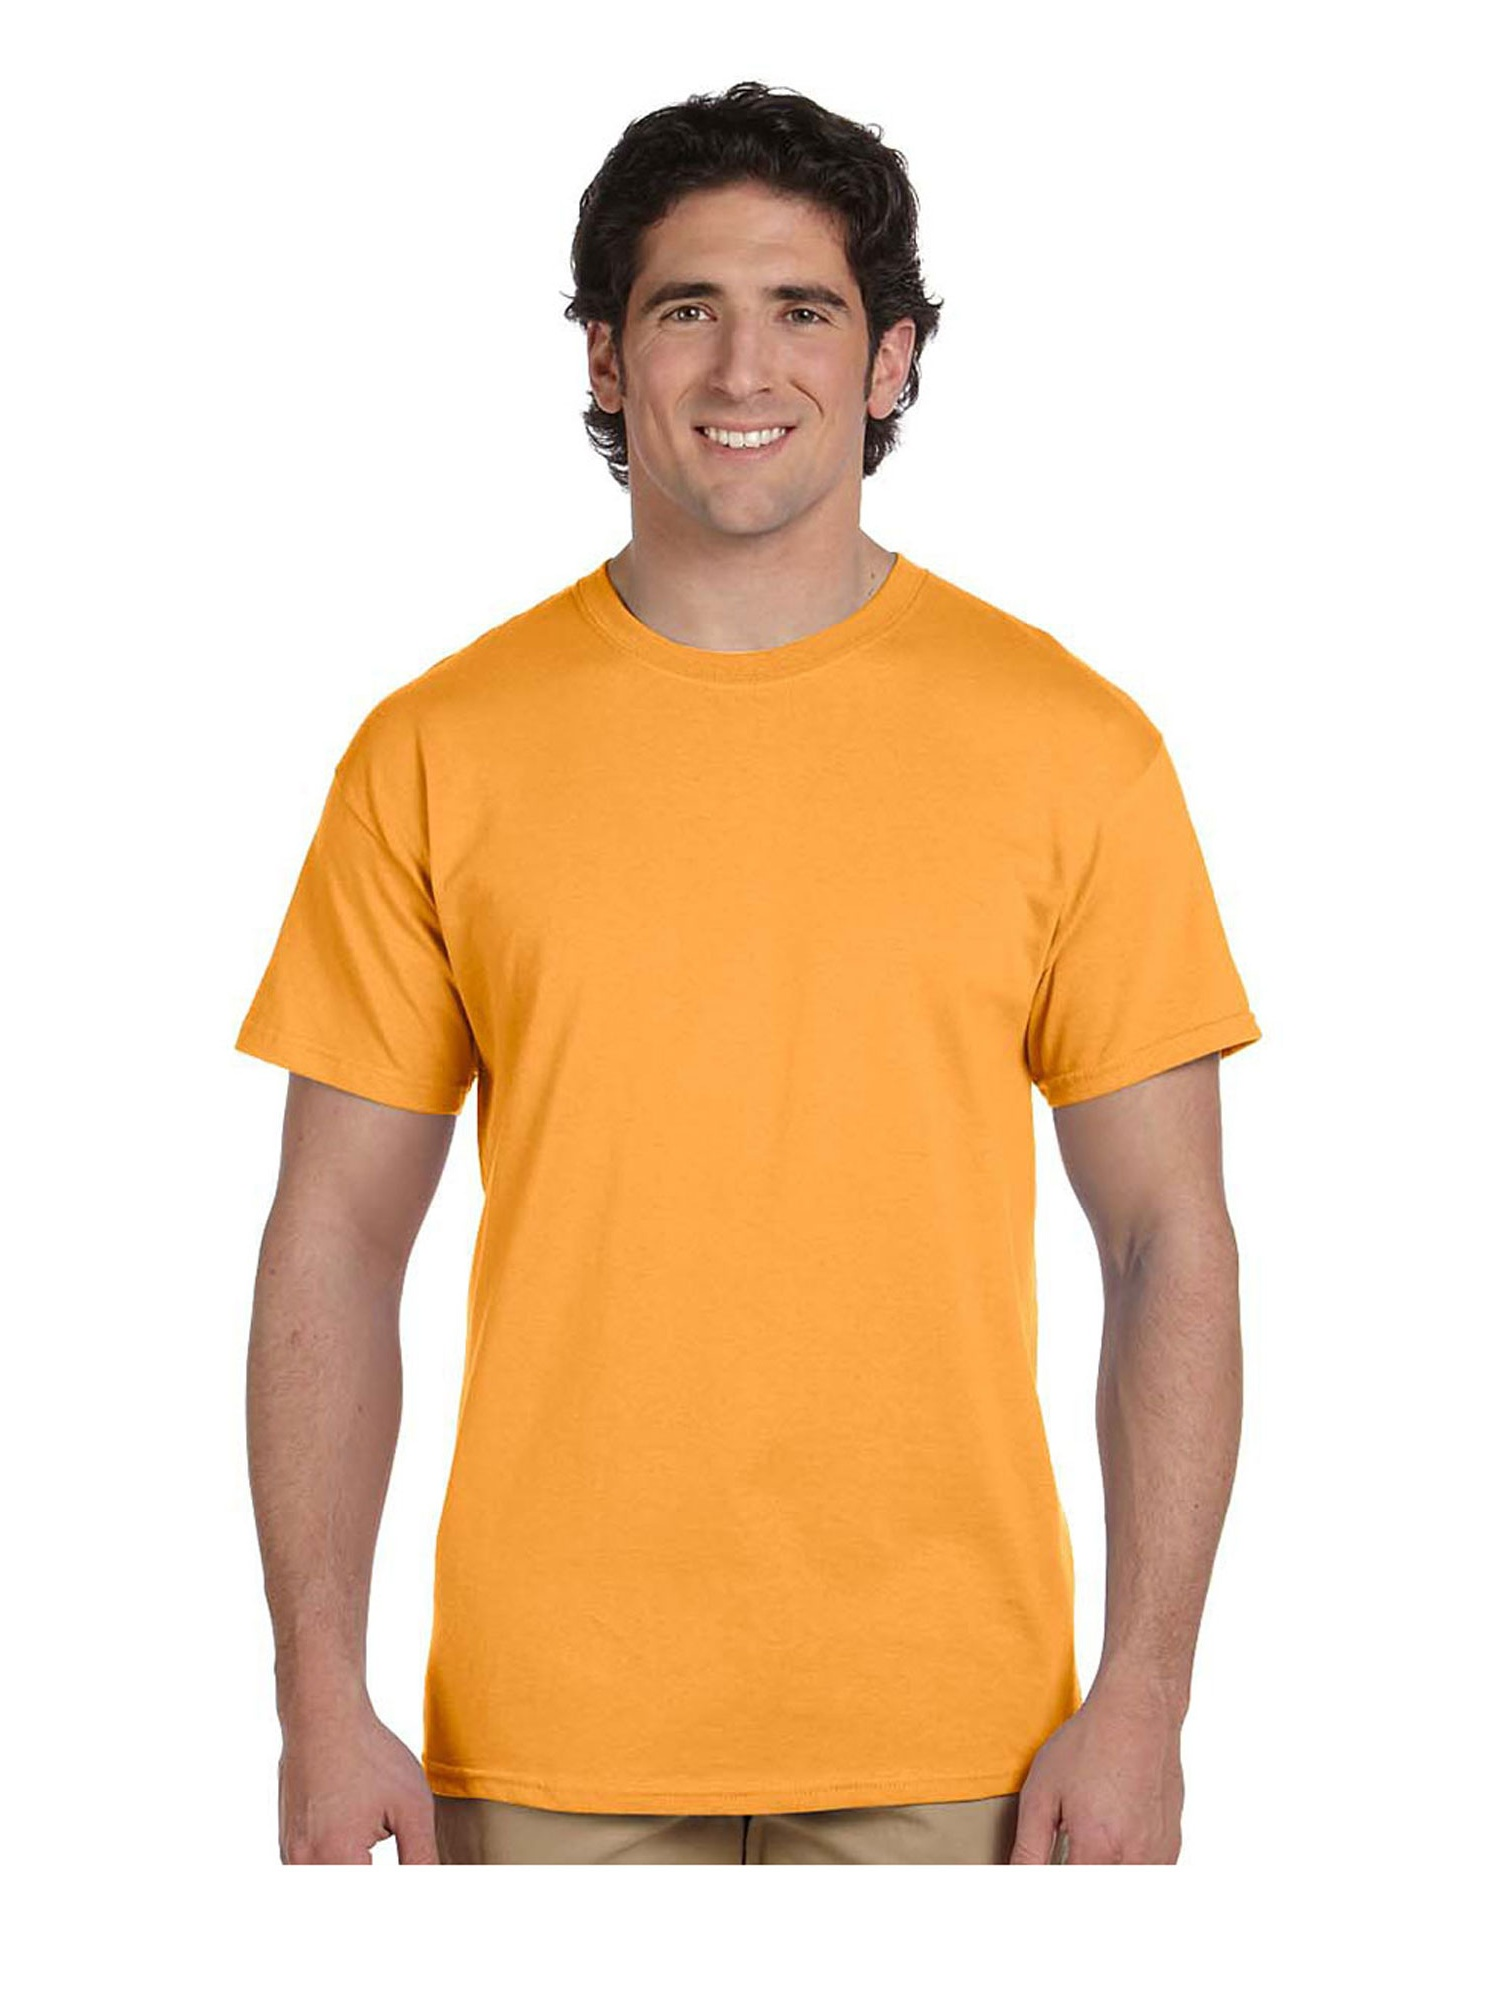 Hanes Comfort Blend Cotton Poly T-Shirt, Style 5170